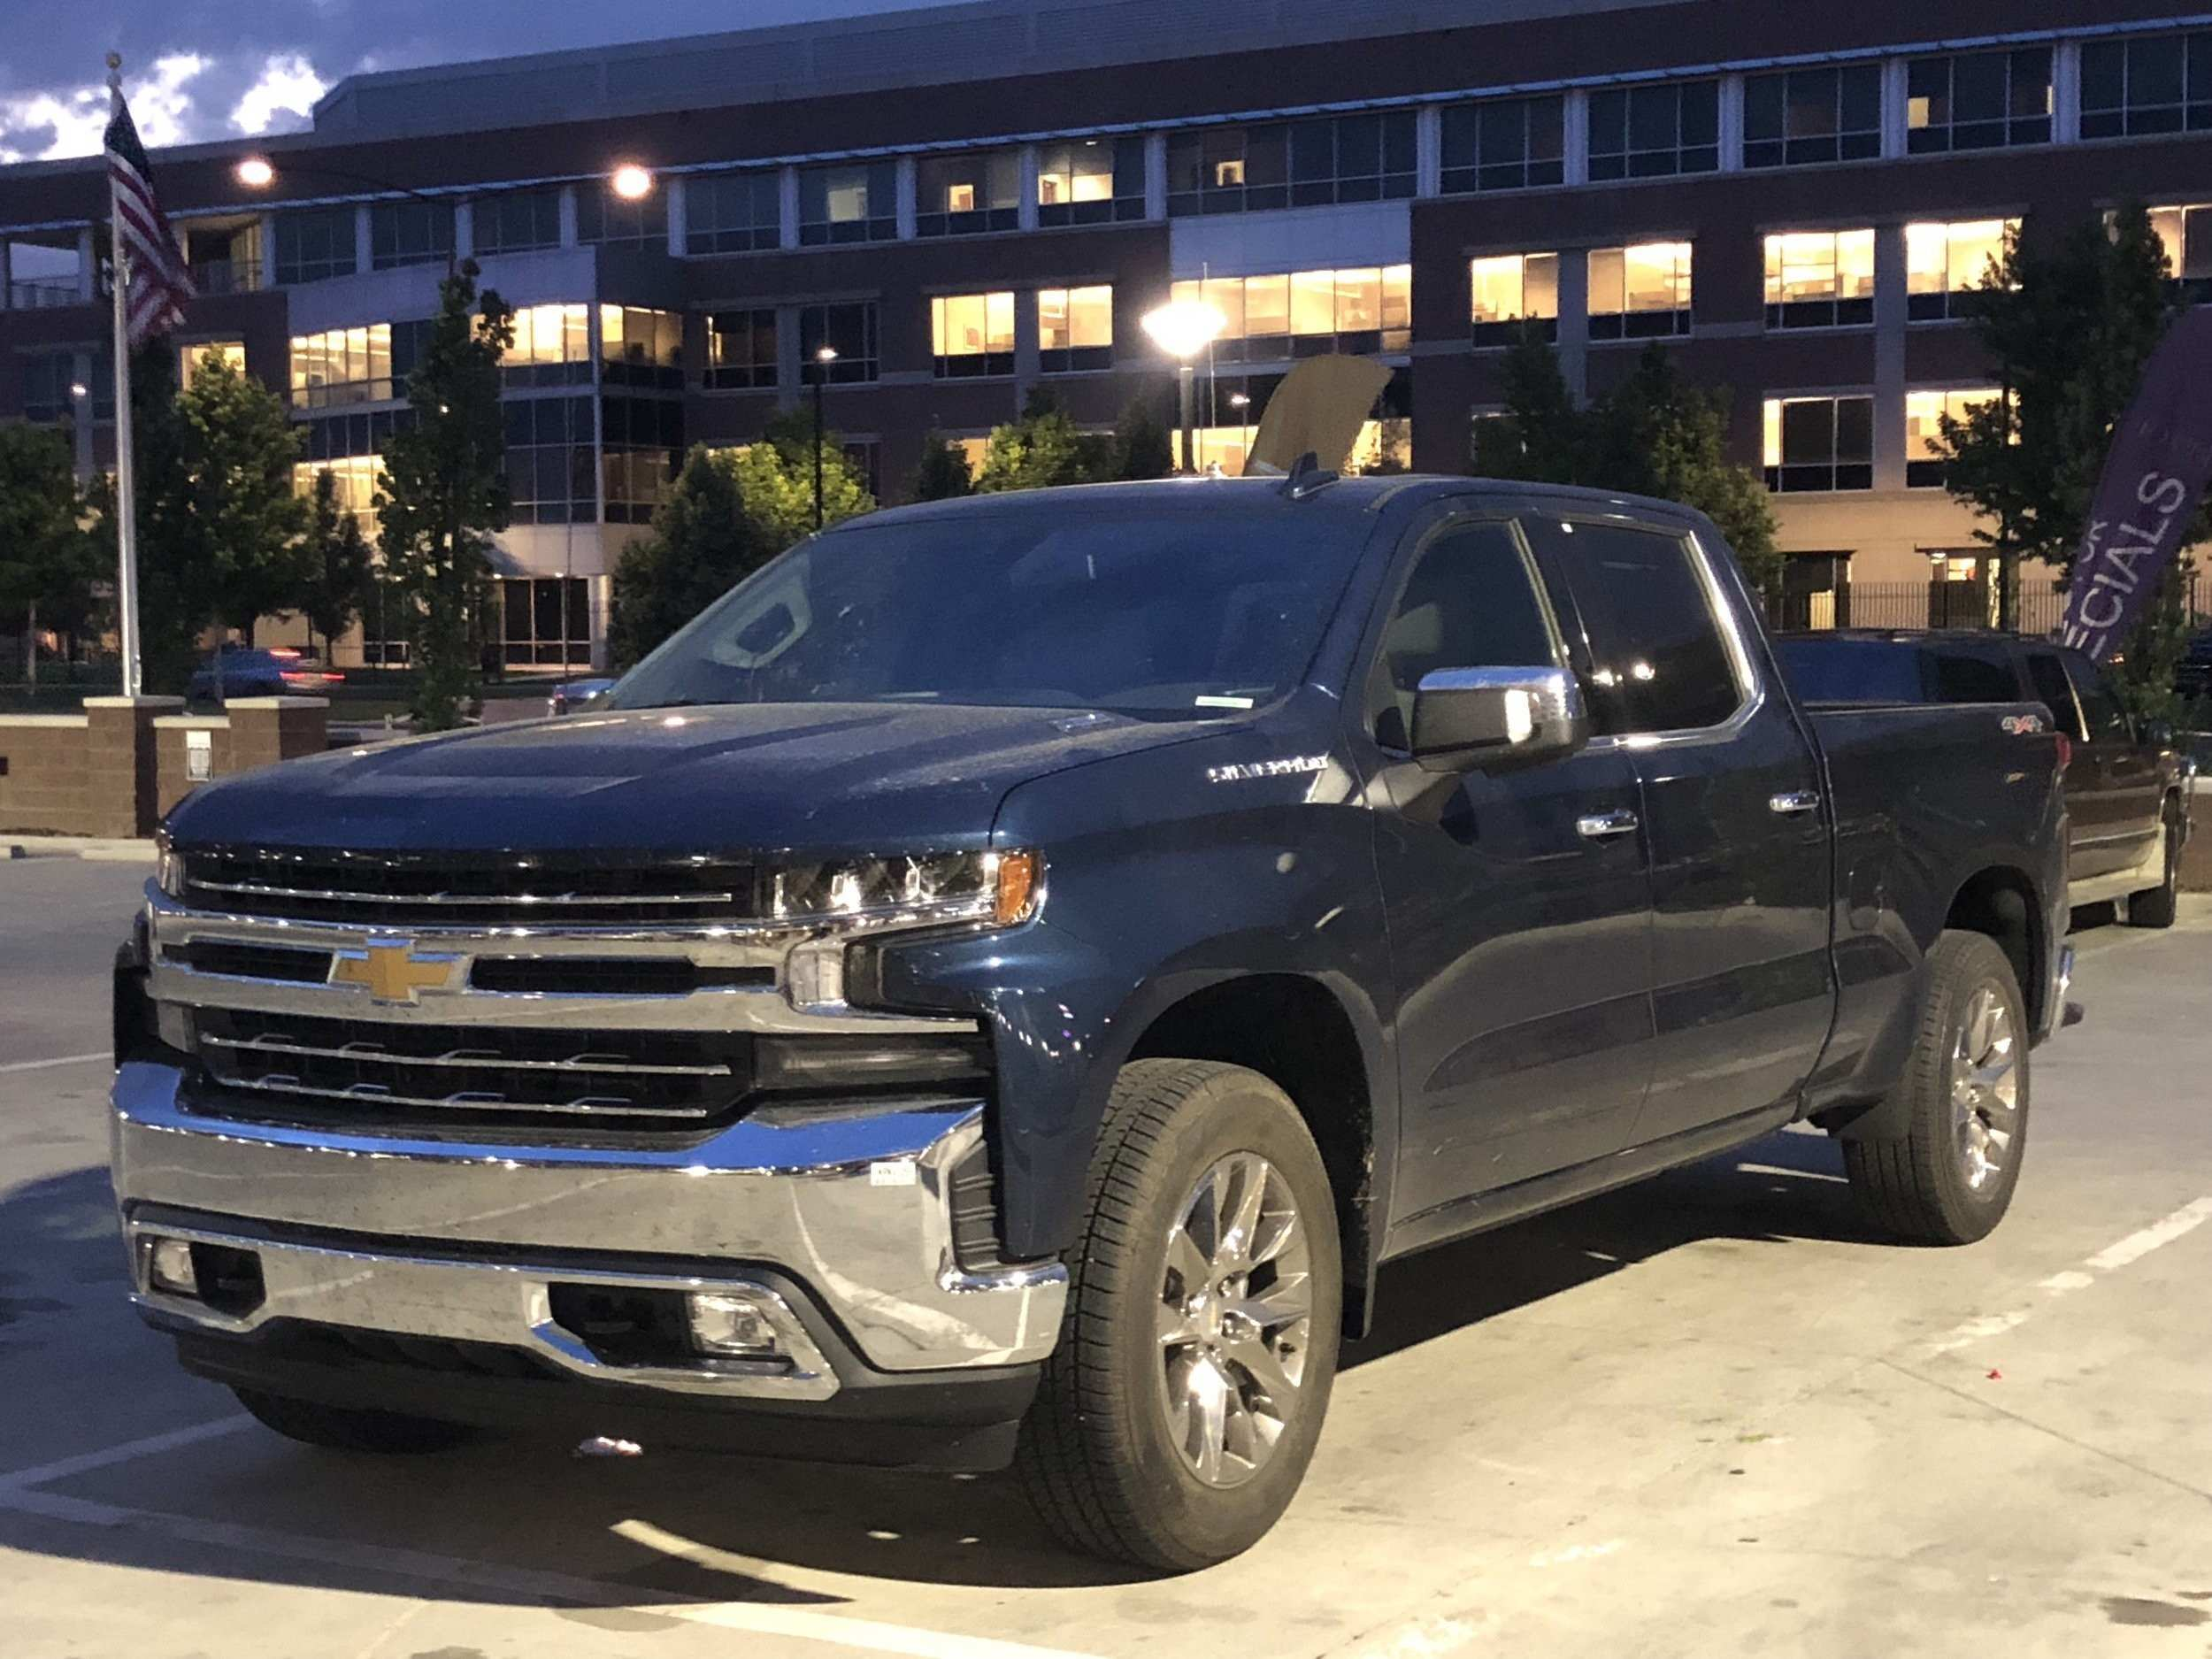 12 All New The 2019 Chevrolet Duramax Specs Price And Release Date First Drive by The 2019 Chevrolet Duramax Specs Price And Release Date